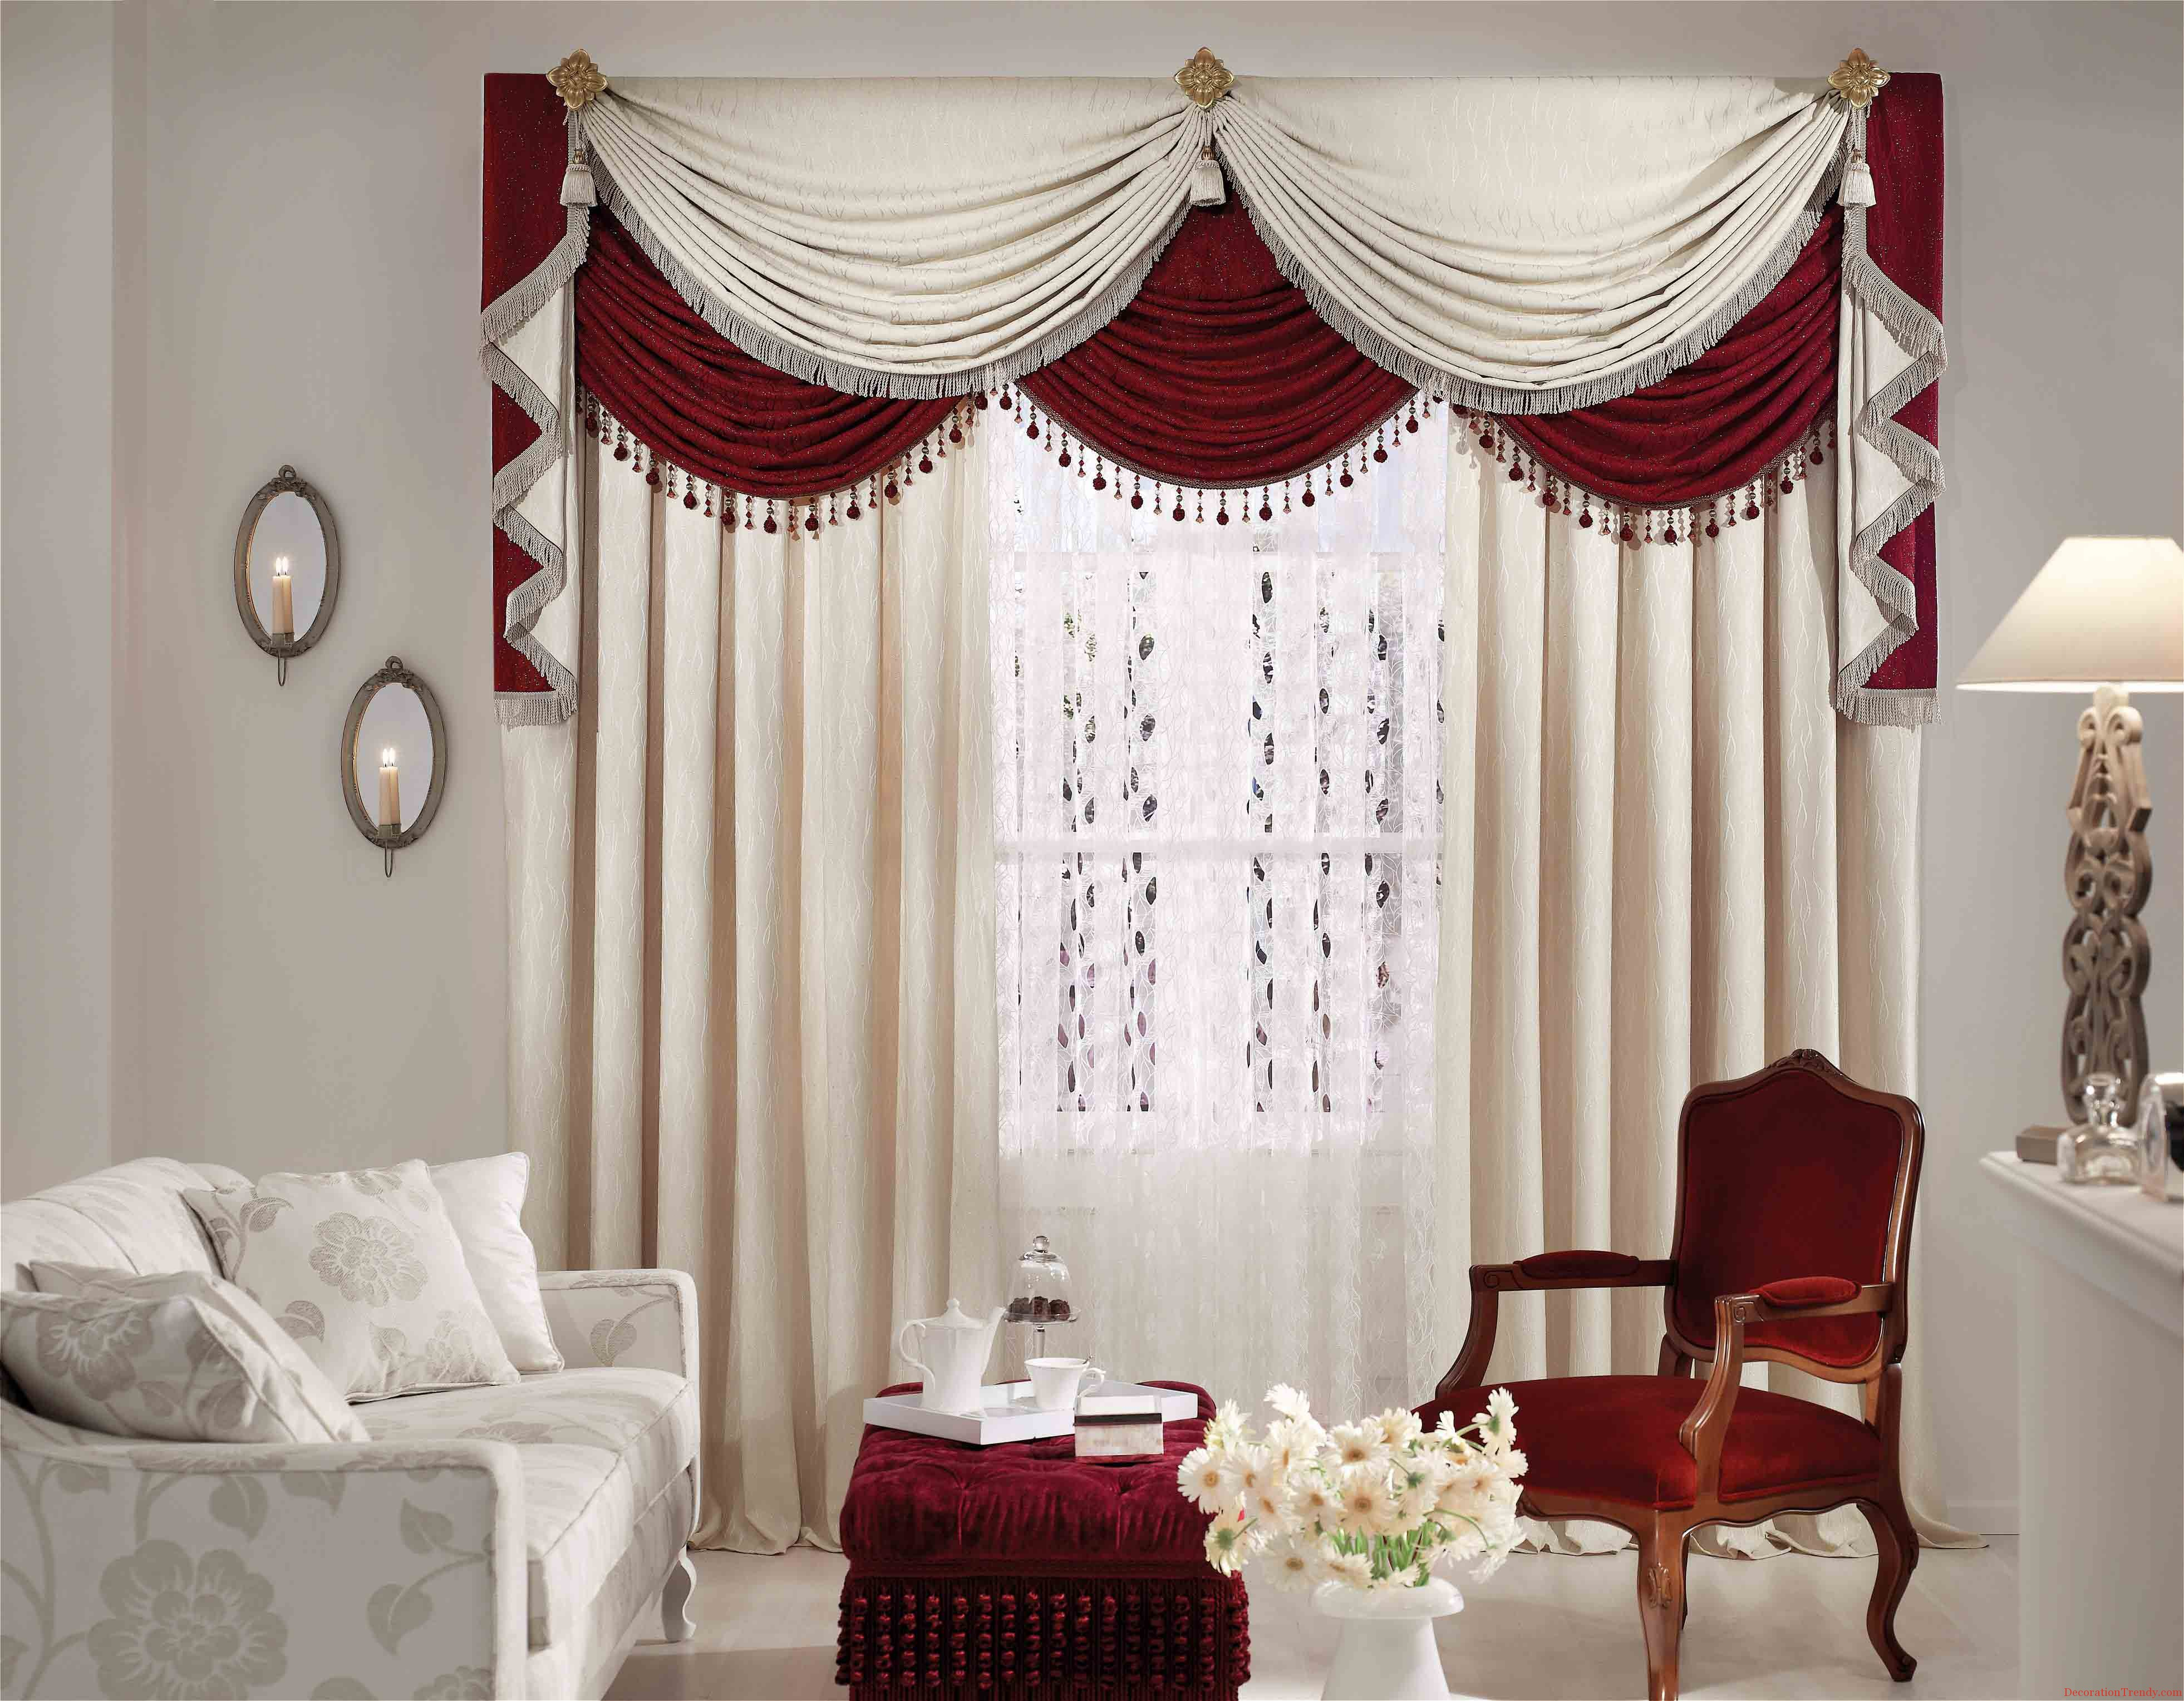 Pictures of 25+ best ideas about Modern Curtains on Pinterest | Modern blinds, Modern modern curtain design ideas